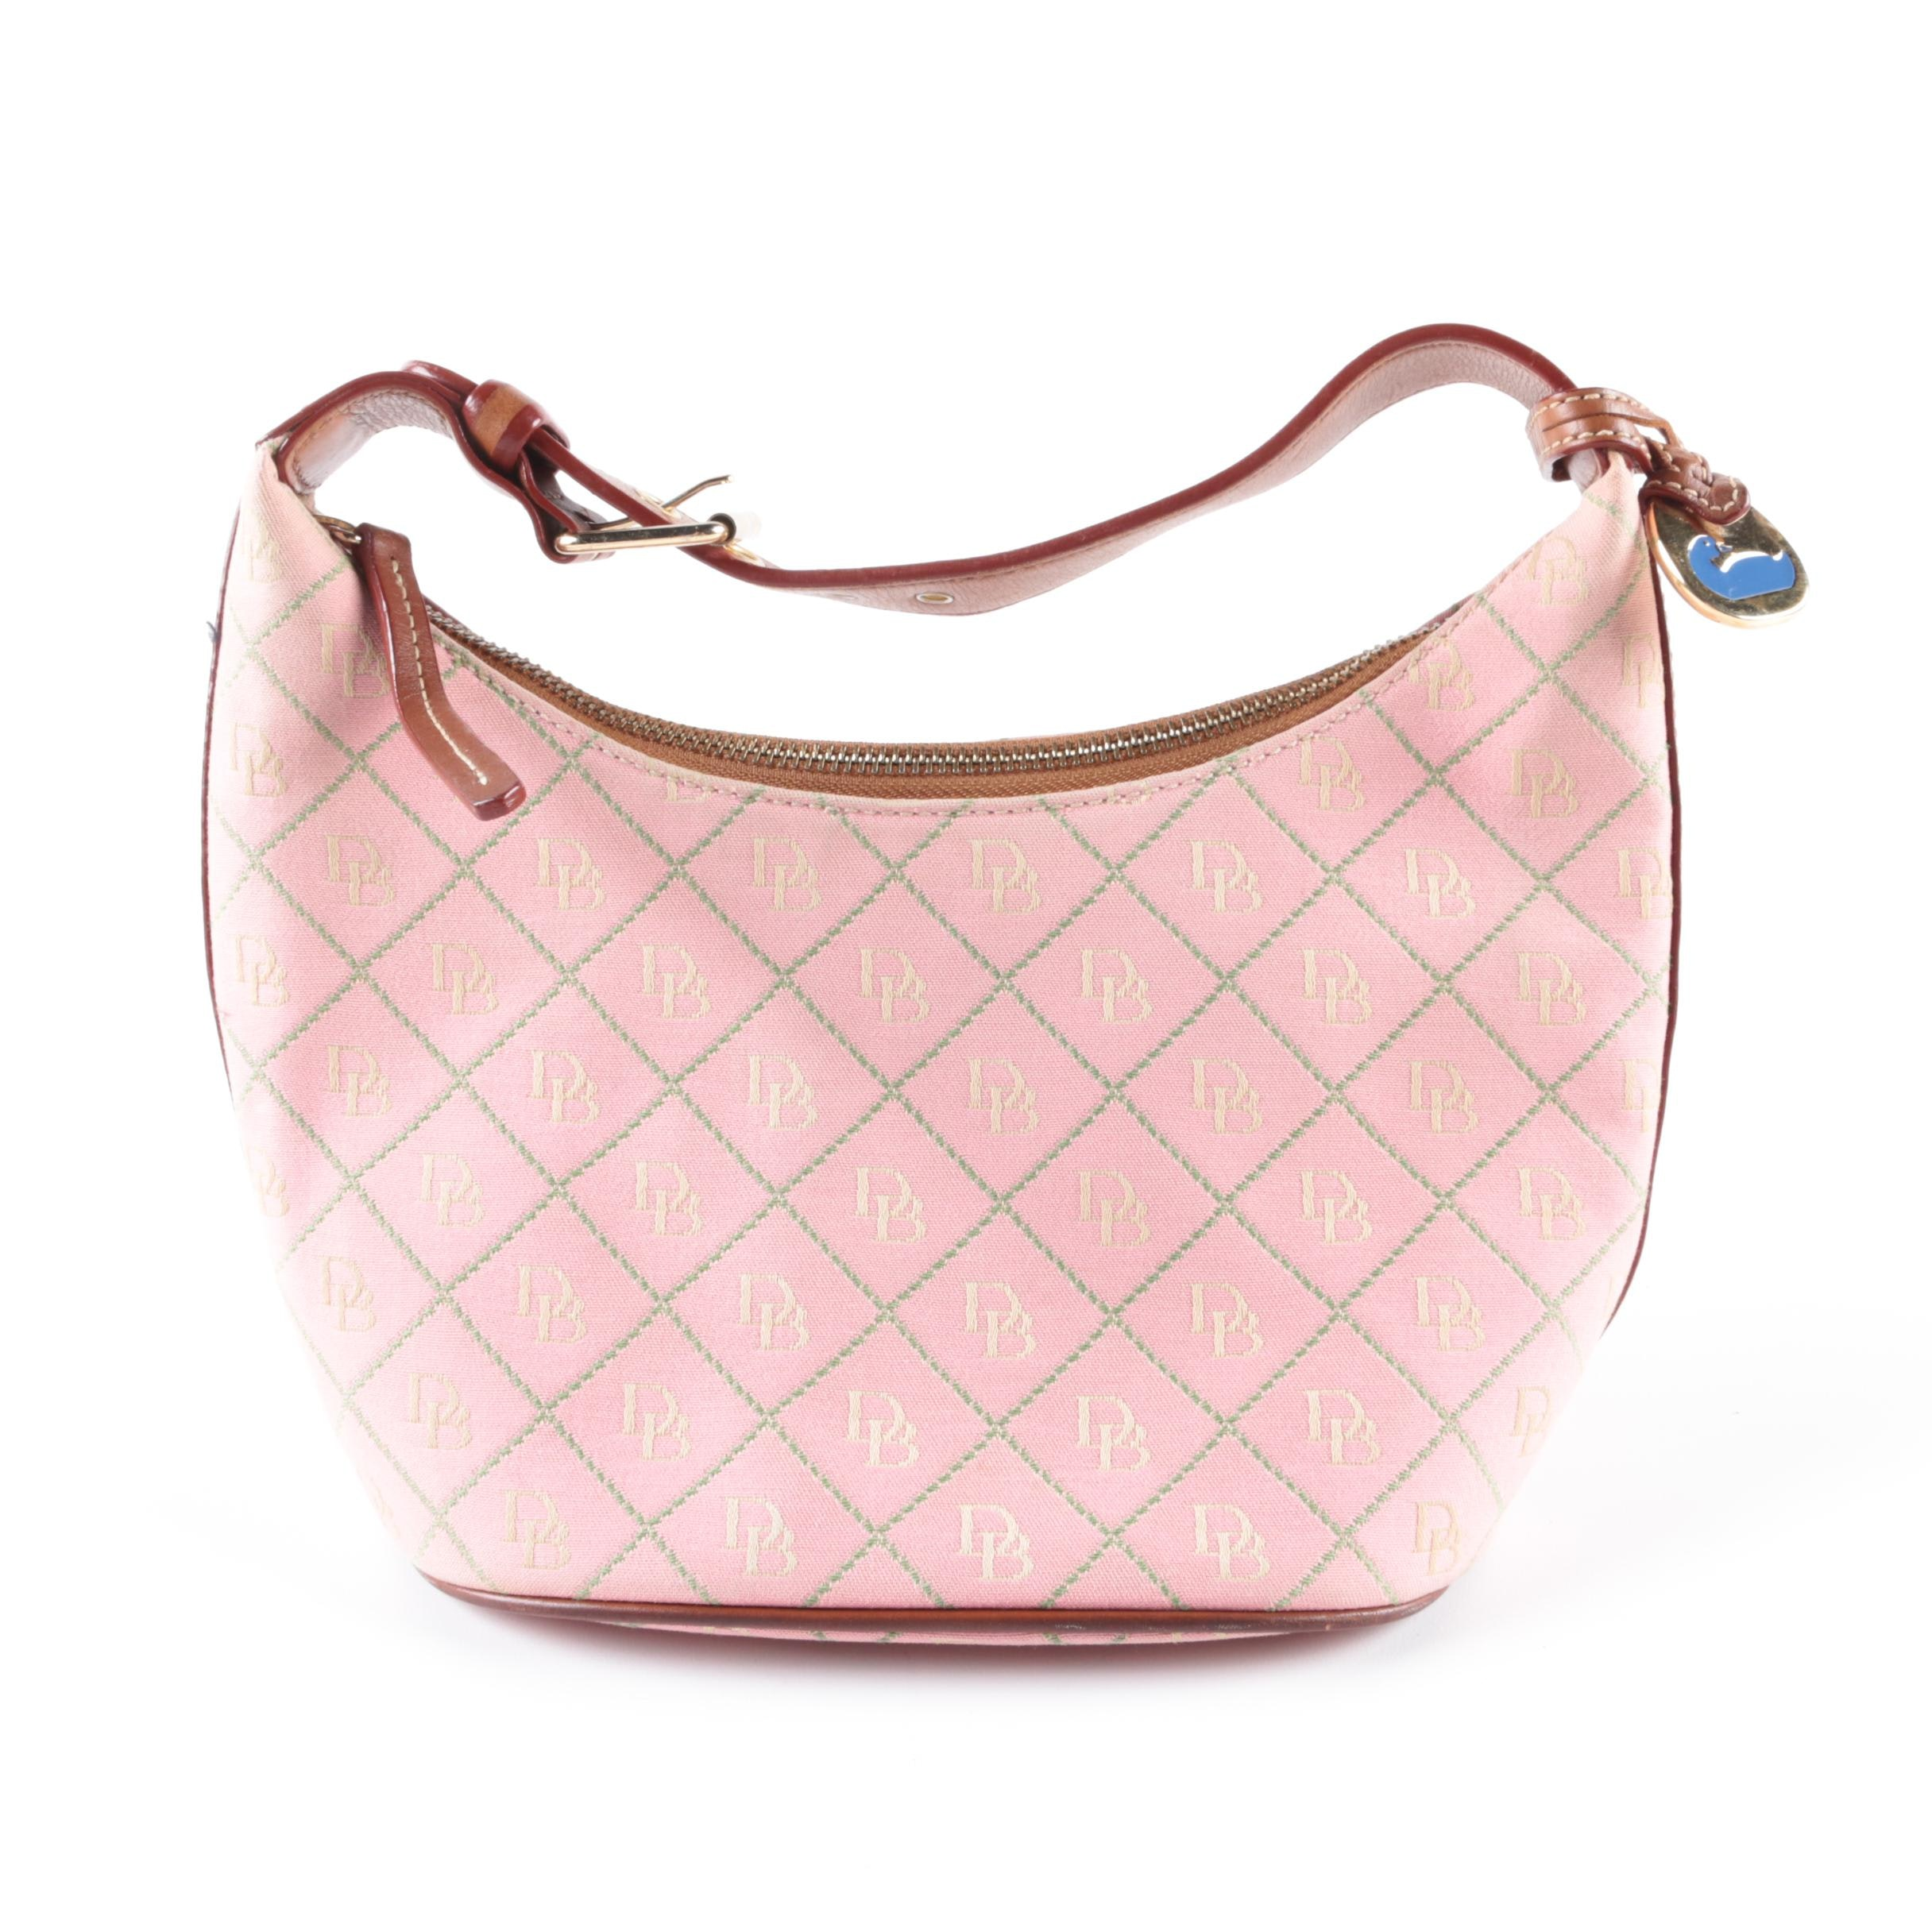 Dooney & Bourke DB Signature Hobo Bag